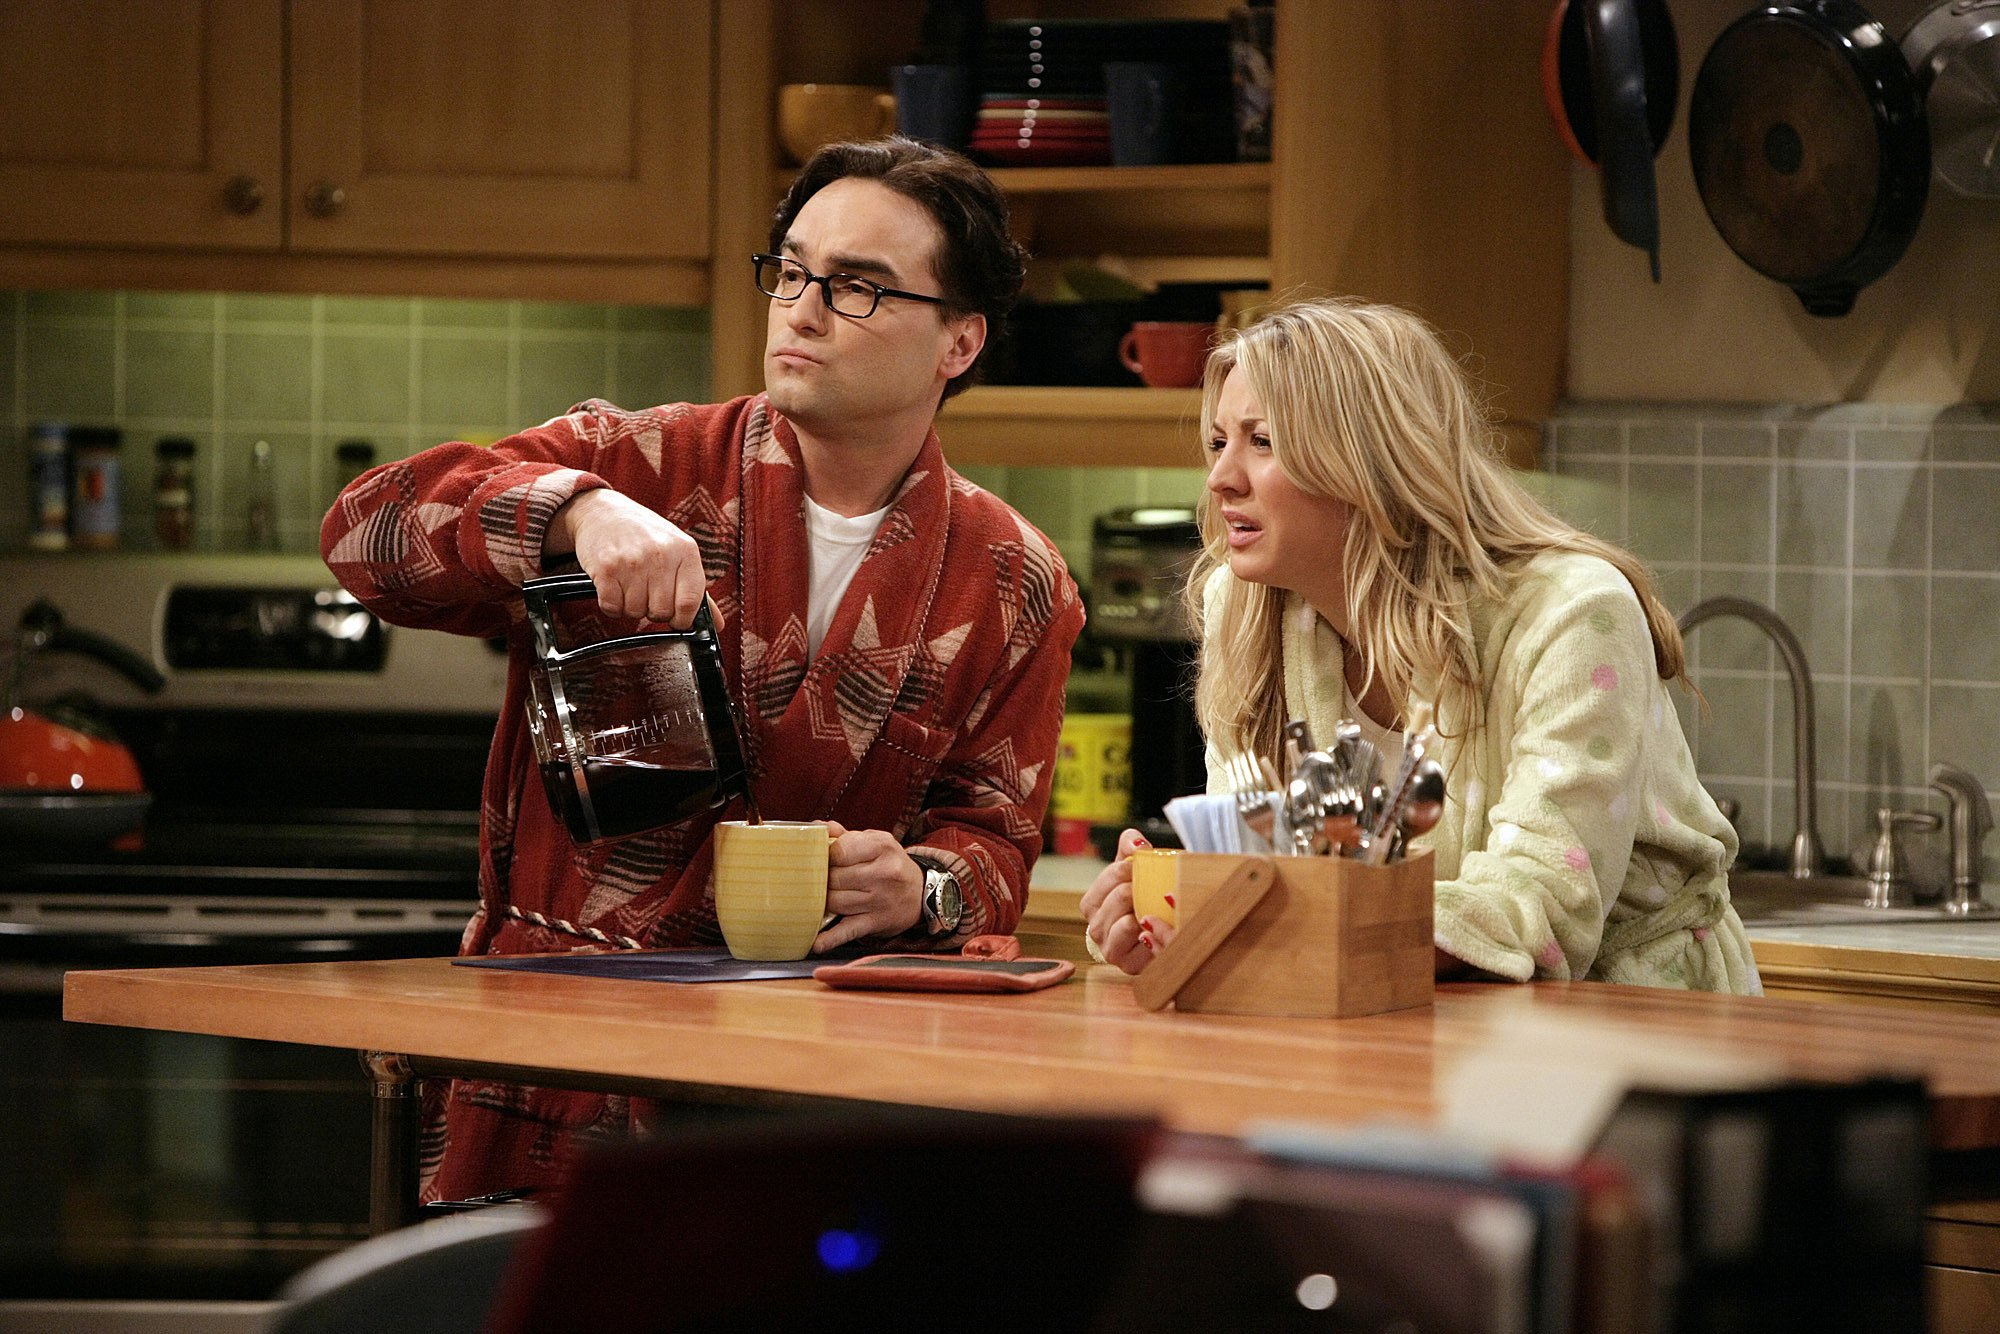 Leonard and Penny in The Big Bang Theory